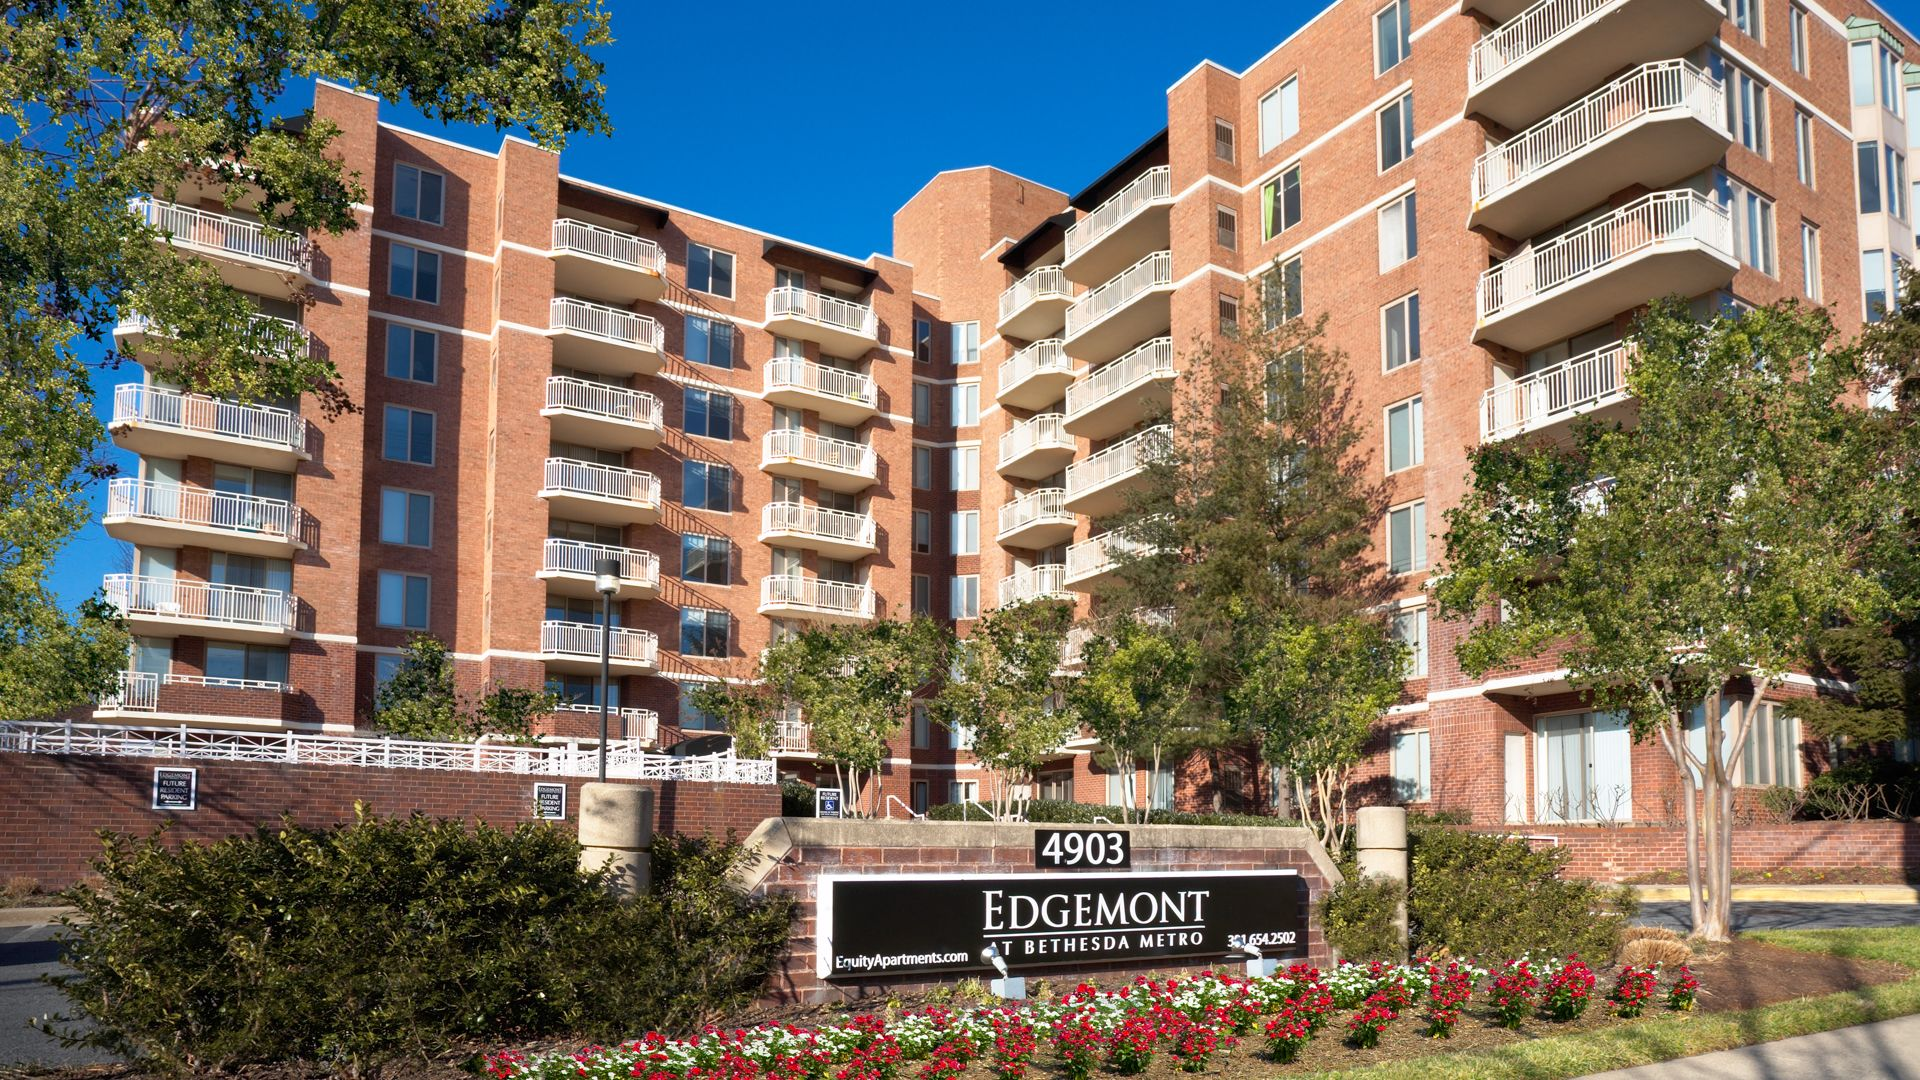 Edgemont at Bethesda Metro Apartments - Building